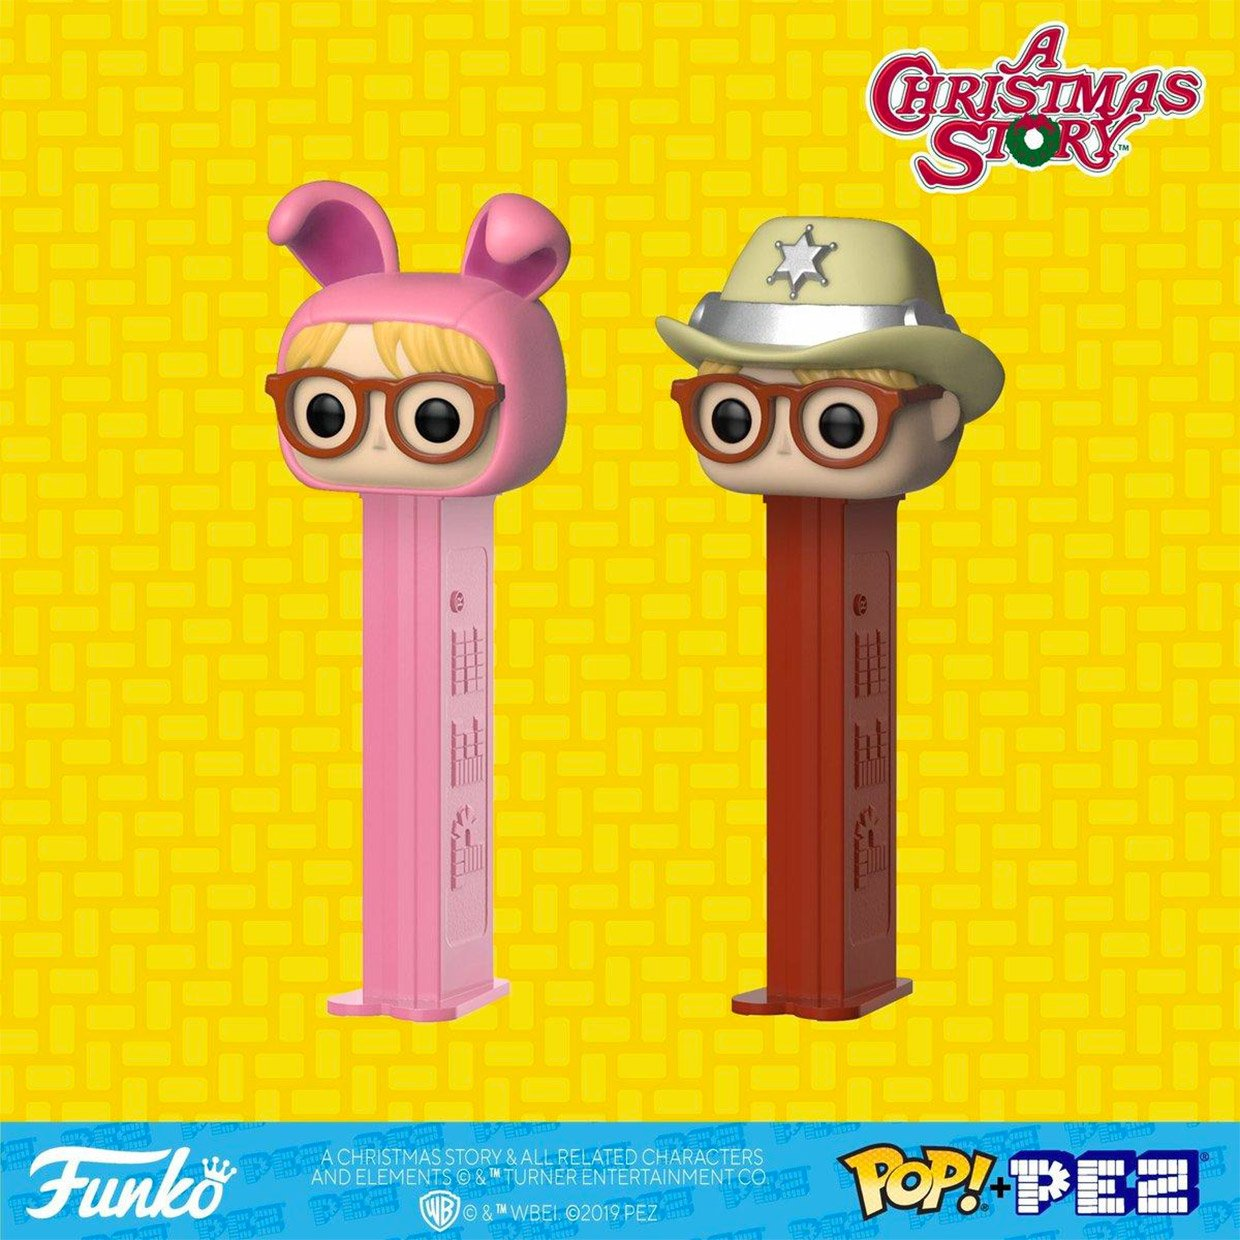 Funko A Christmas Story PEZ Dispensers: You'll Shoot Your Eye Out, Kid!